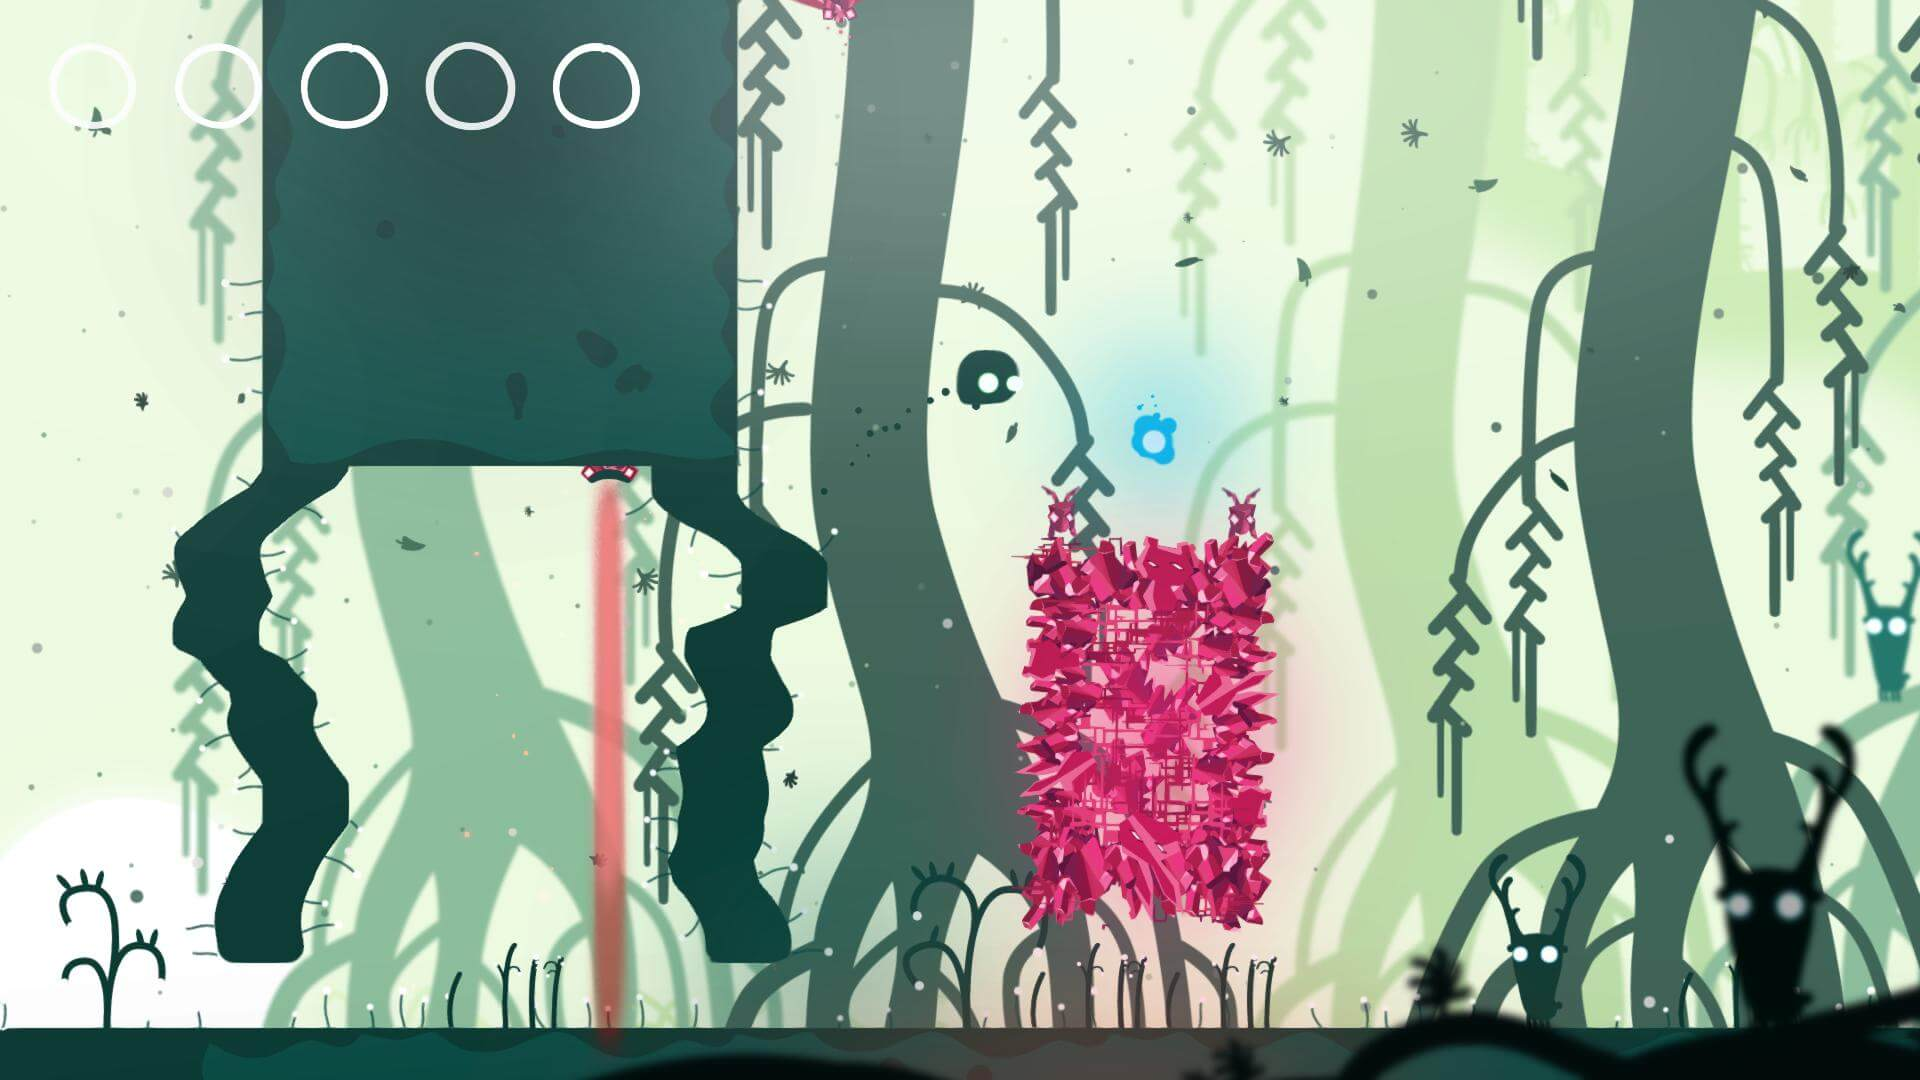 Semblance allows platforms to act as trampolines when reset